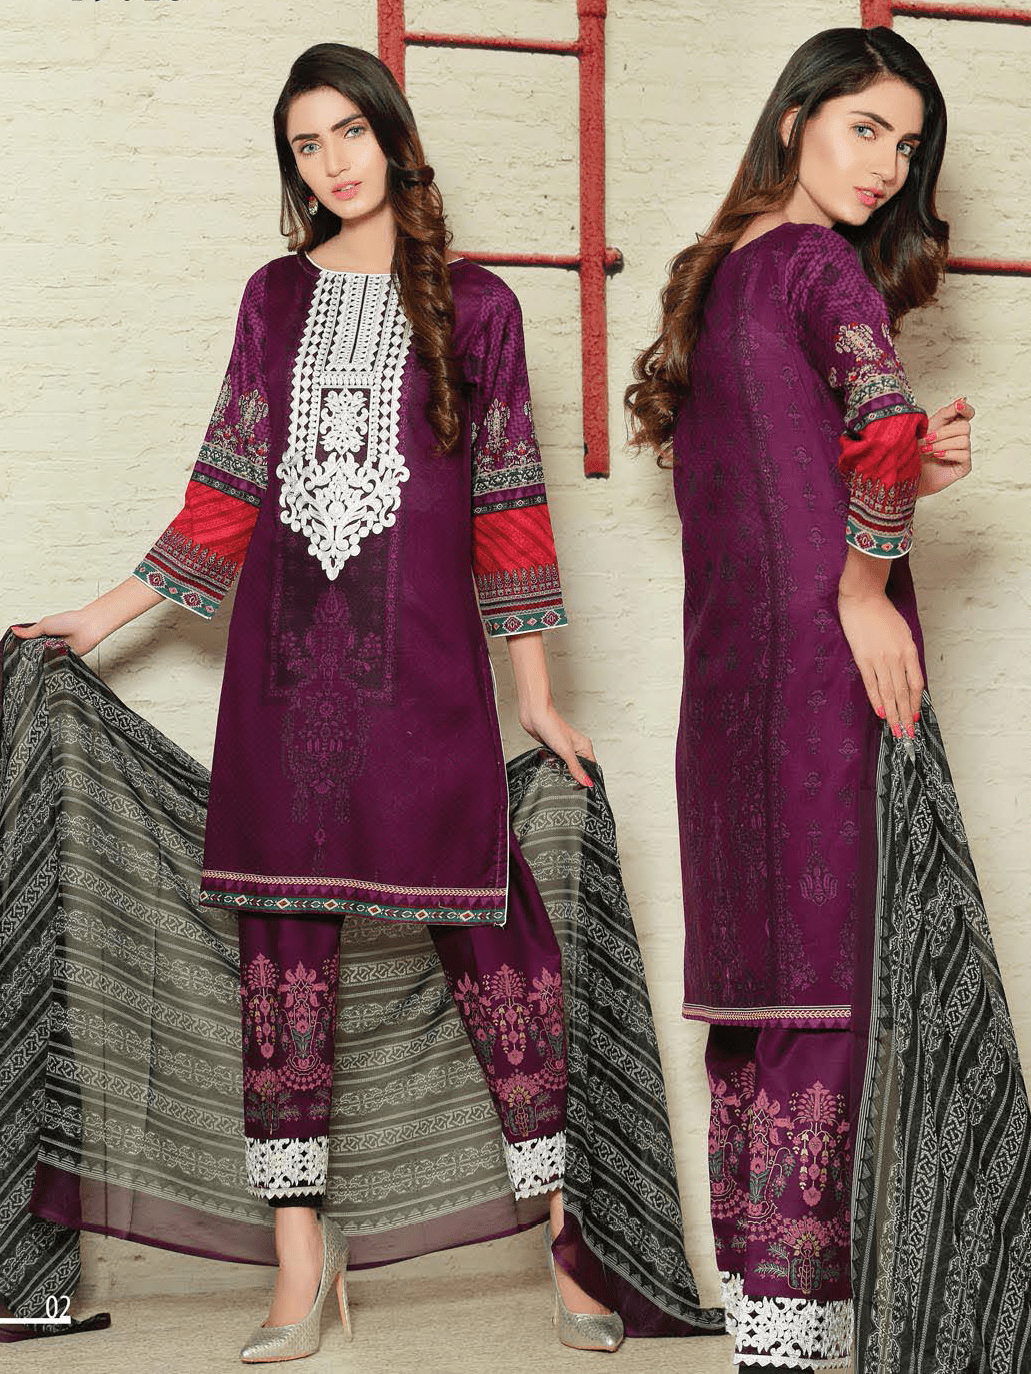 Aroosa Embroidered Swiss Lawn 2019 Unstitched 3 Piece Suit MSV-19023 - FaisalFabrics.pk